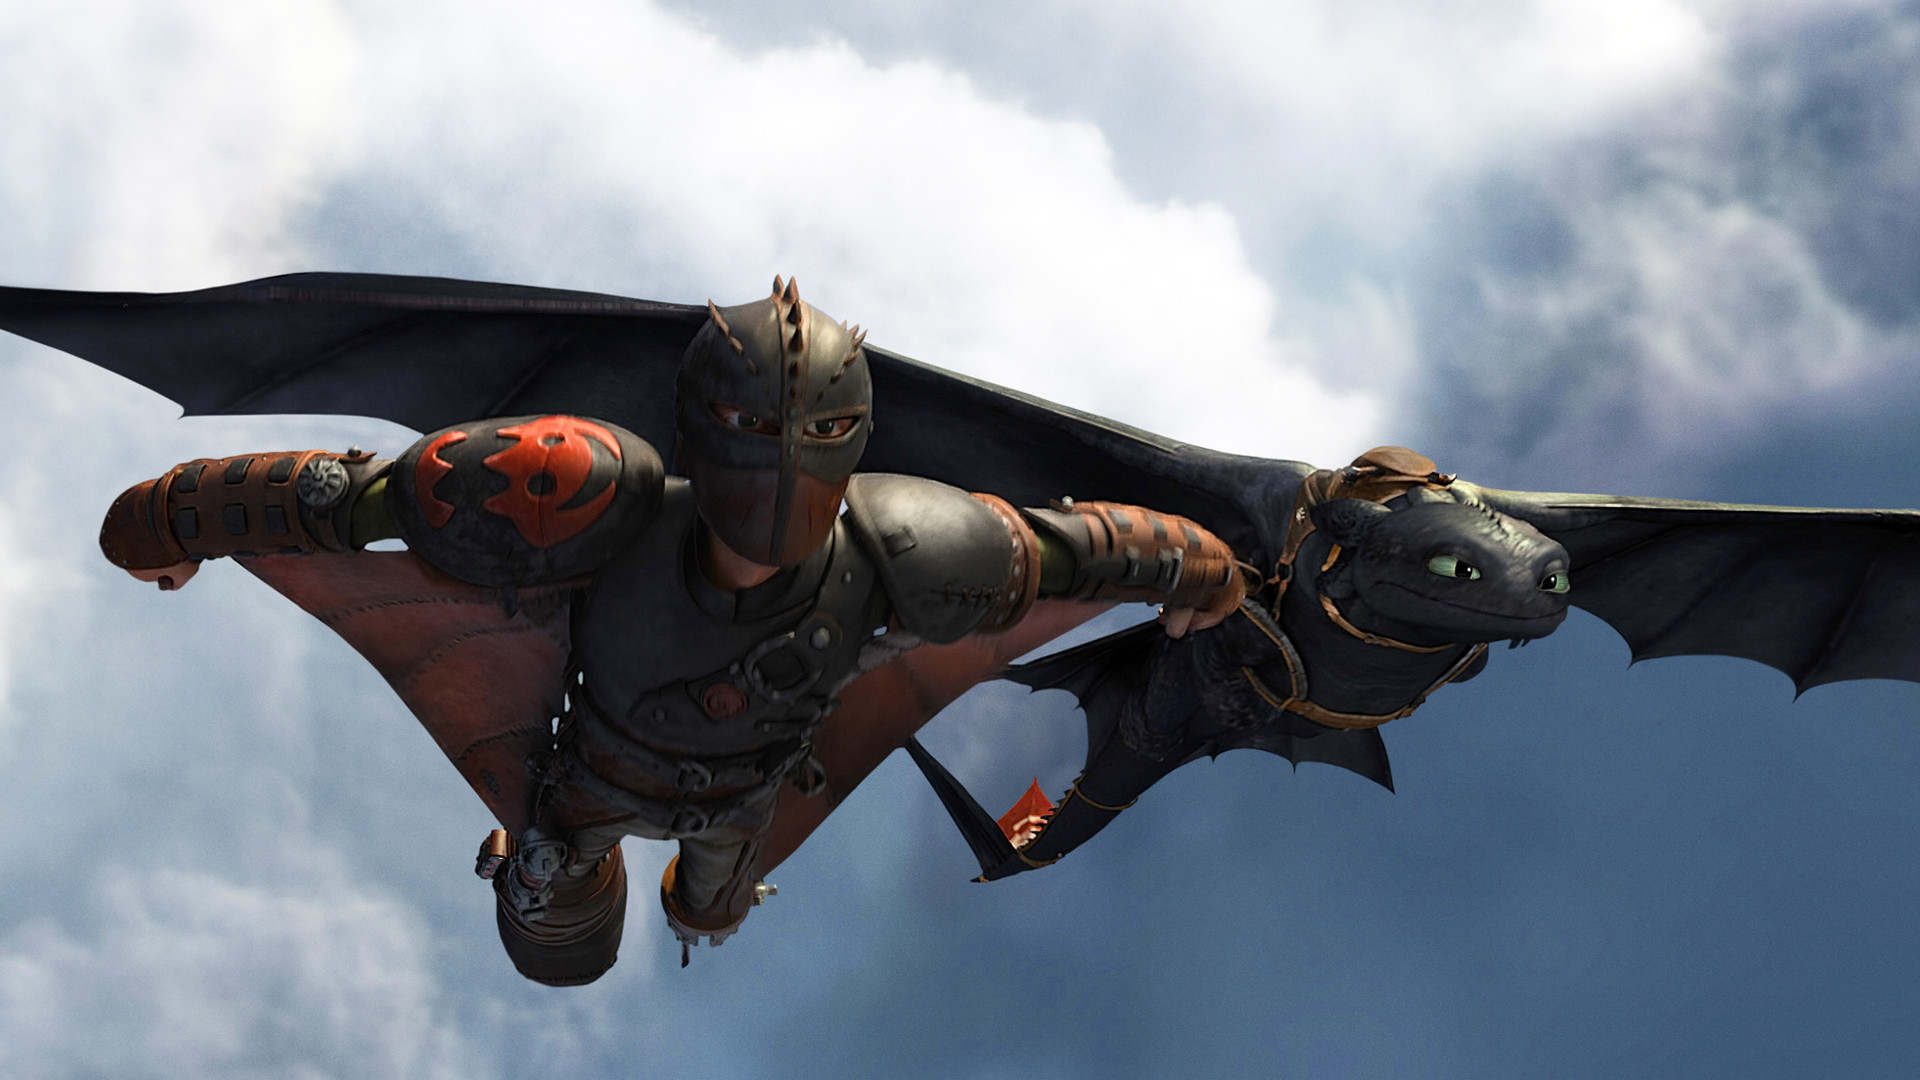 hiccup and toothless / night fury flying in how to train your dragon 2 movie